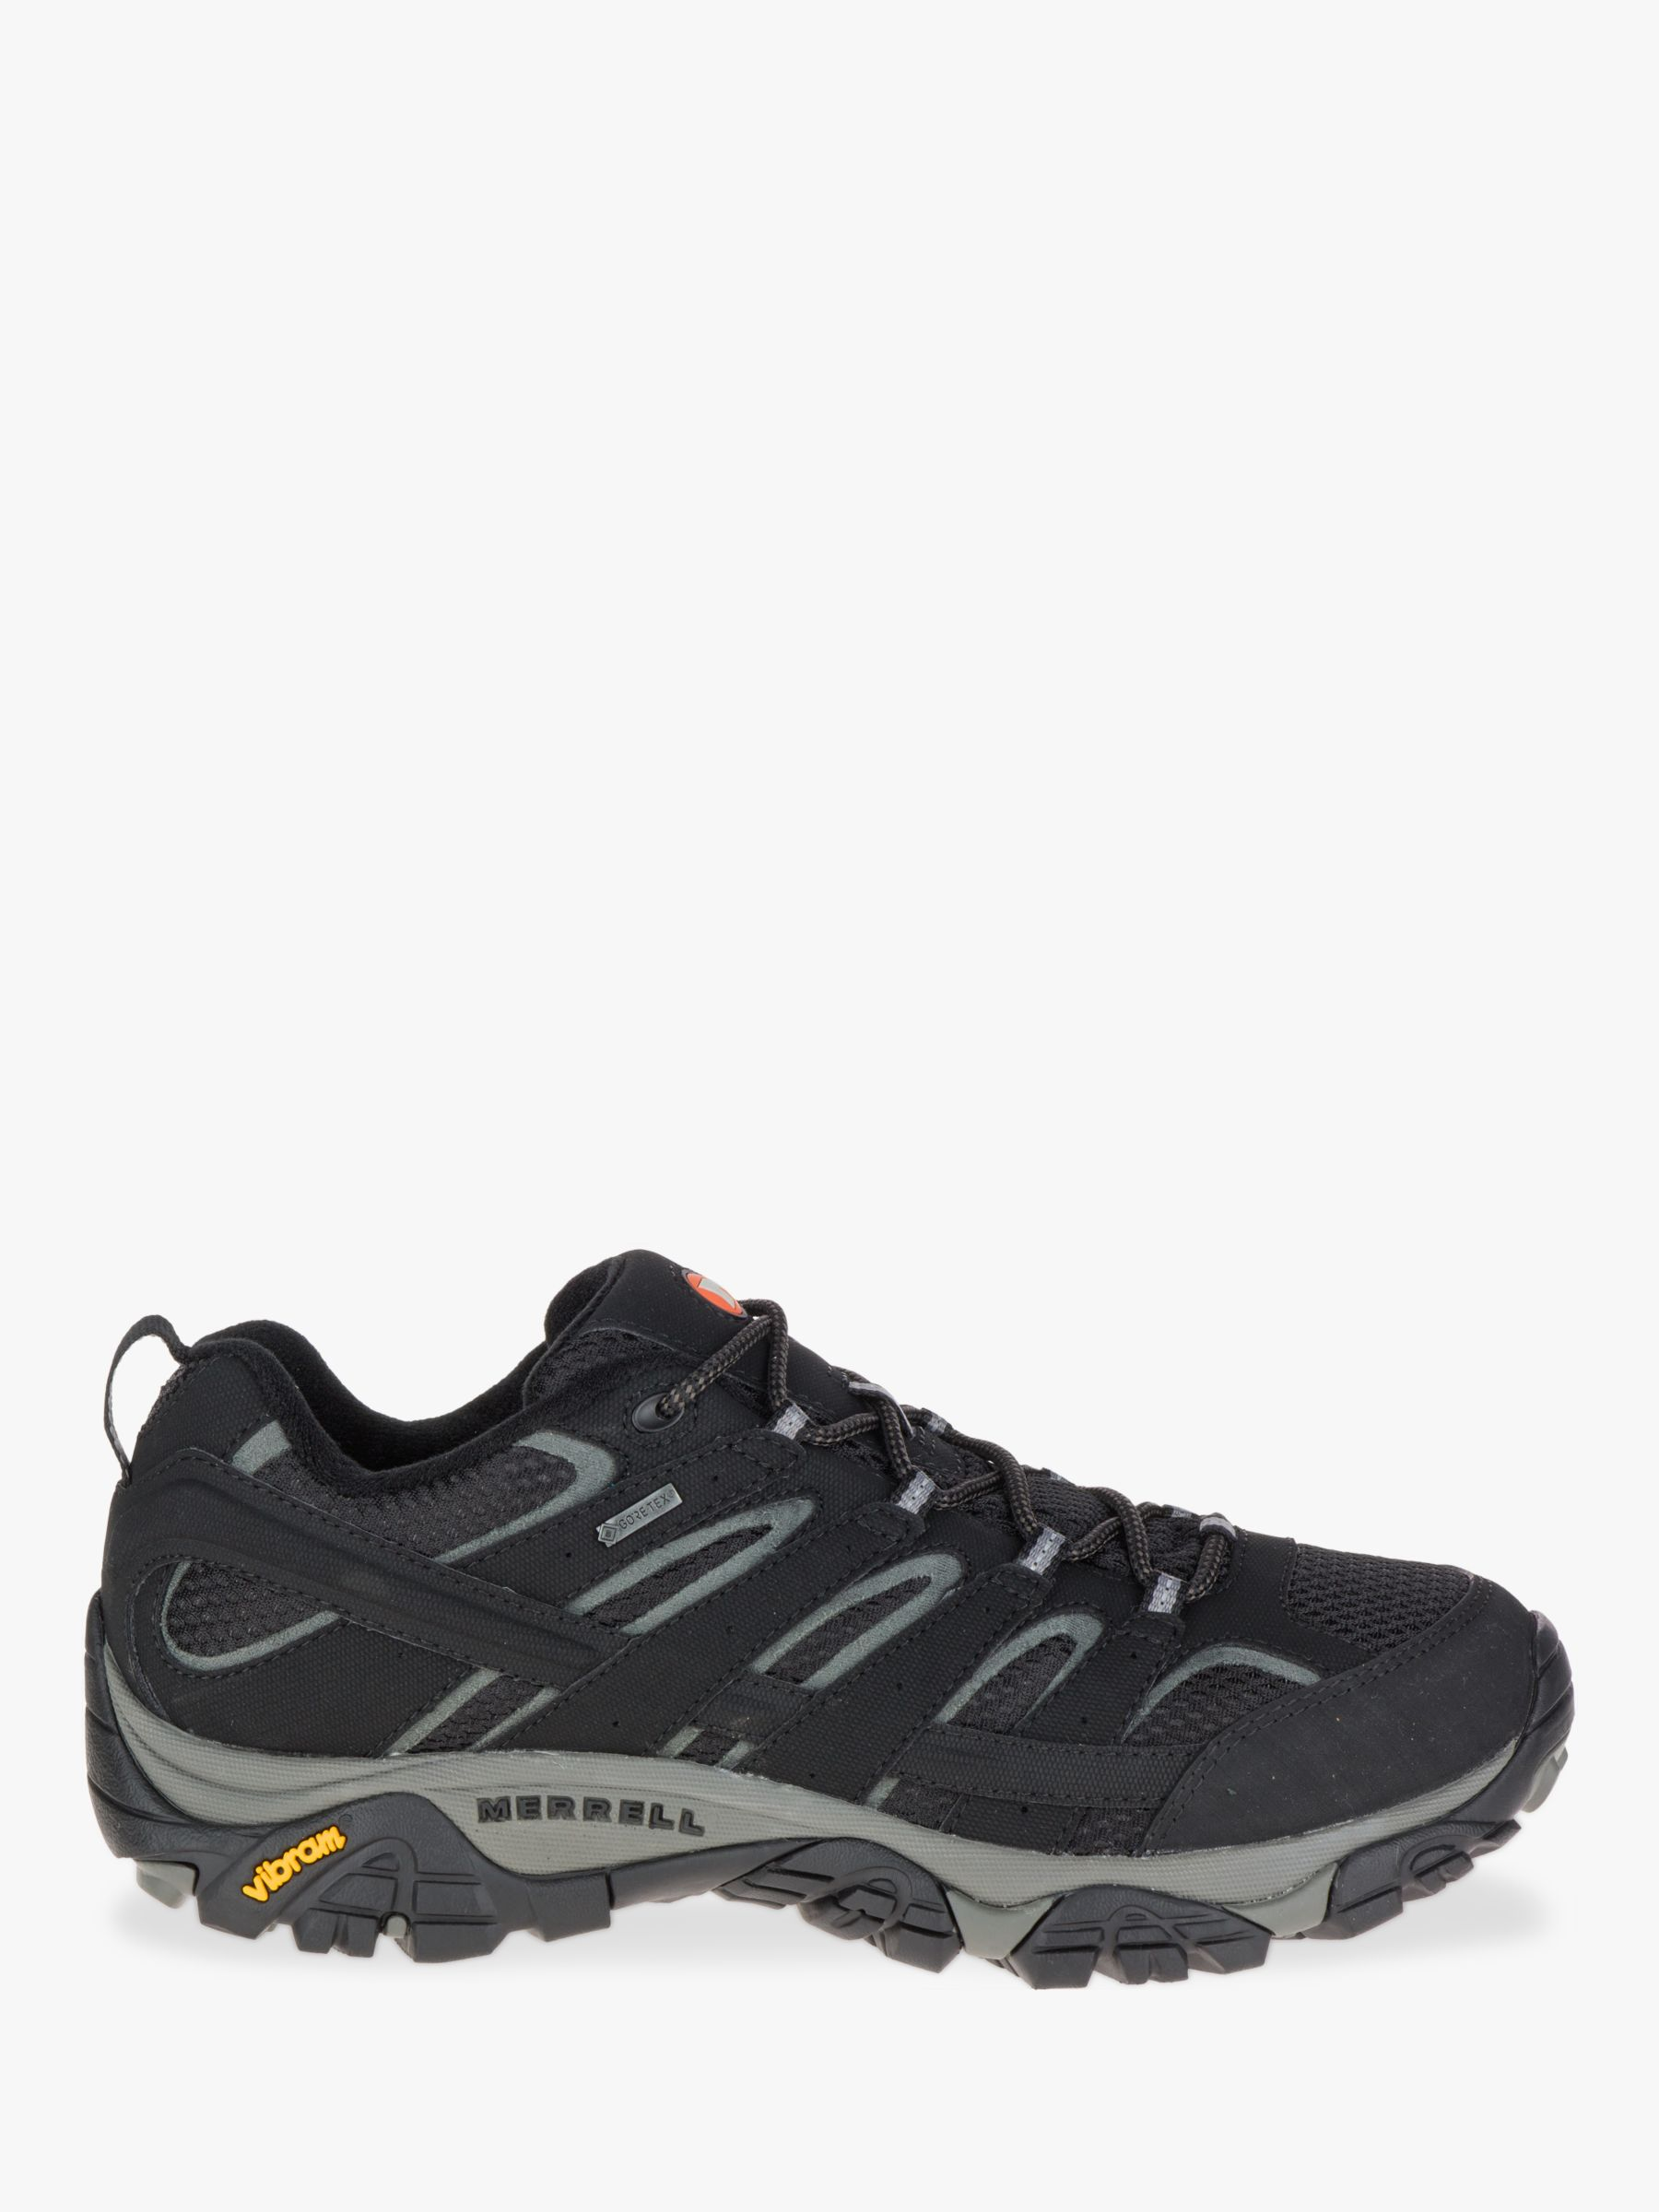 Merrell MOAB 2 Men's Waterproof Gore-Tex Hiking Shoes